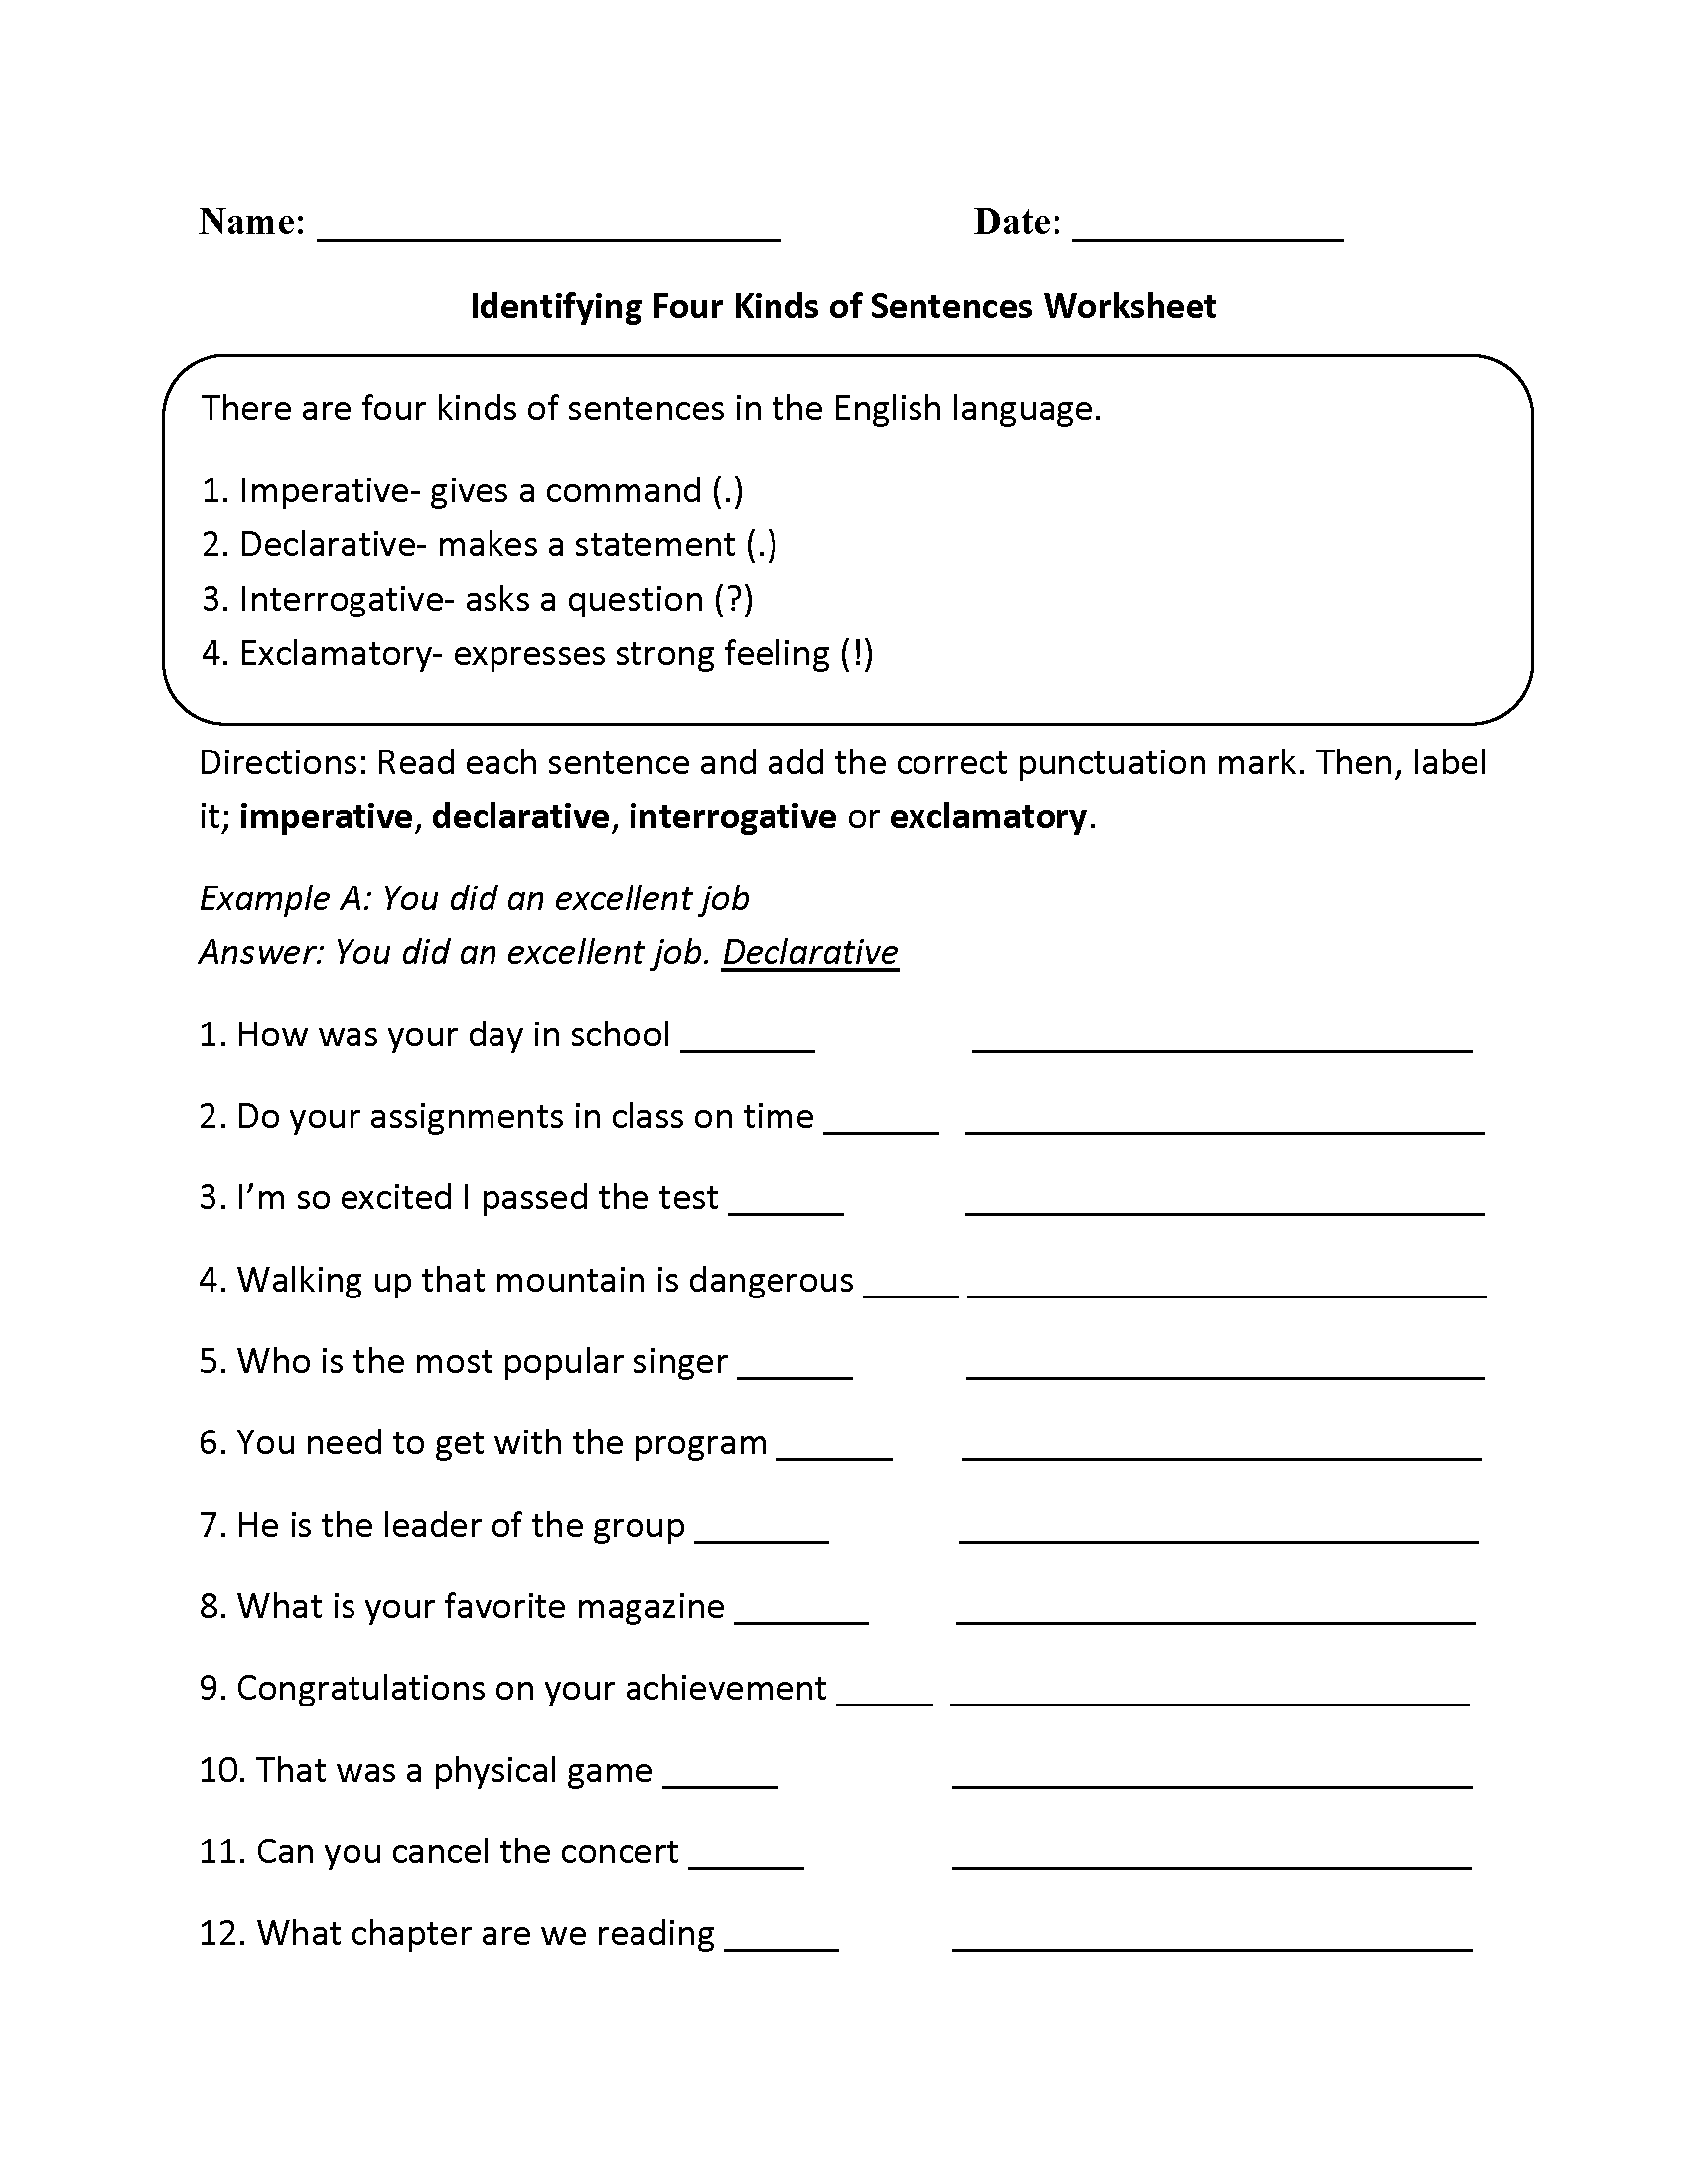 Worksheets Four Kinds Of Sentences Worksheets sentences worksheets kinds of four worksheet